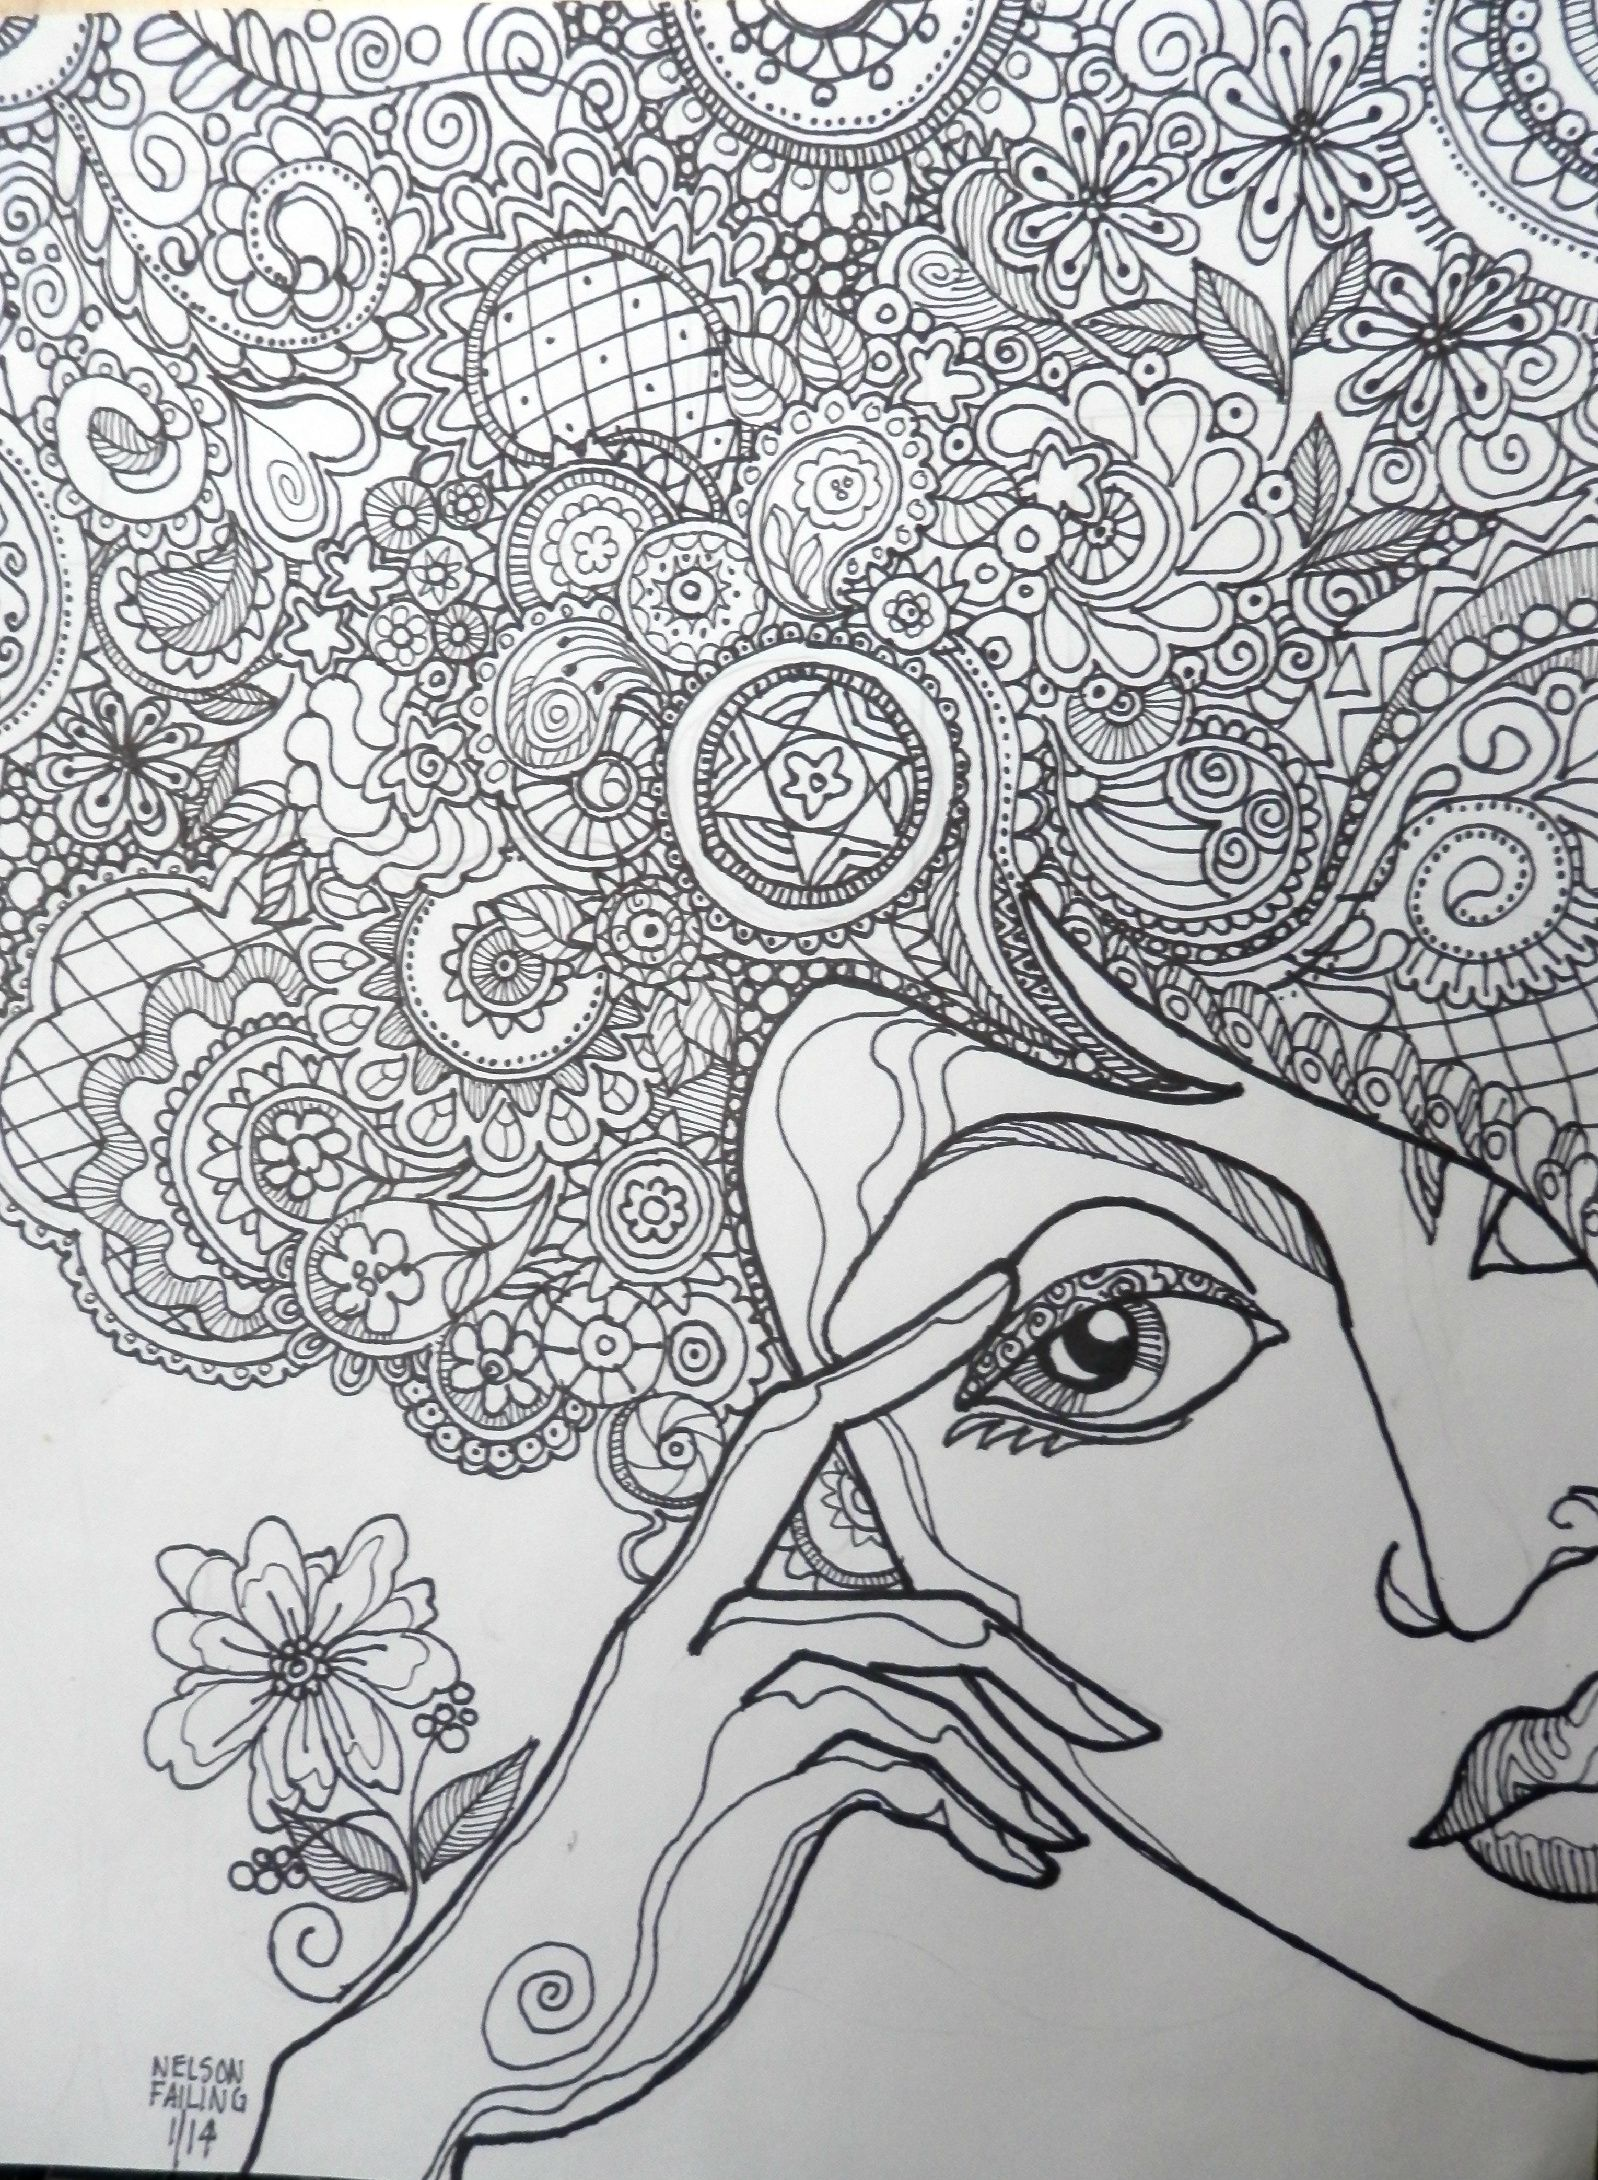 I 39 VE GOT TANGLES ON MY MINDNelson Failing Zentangle